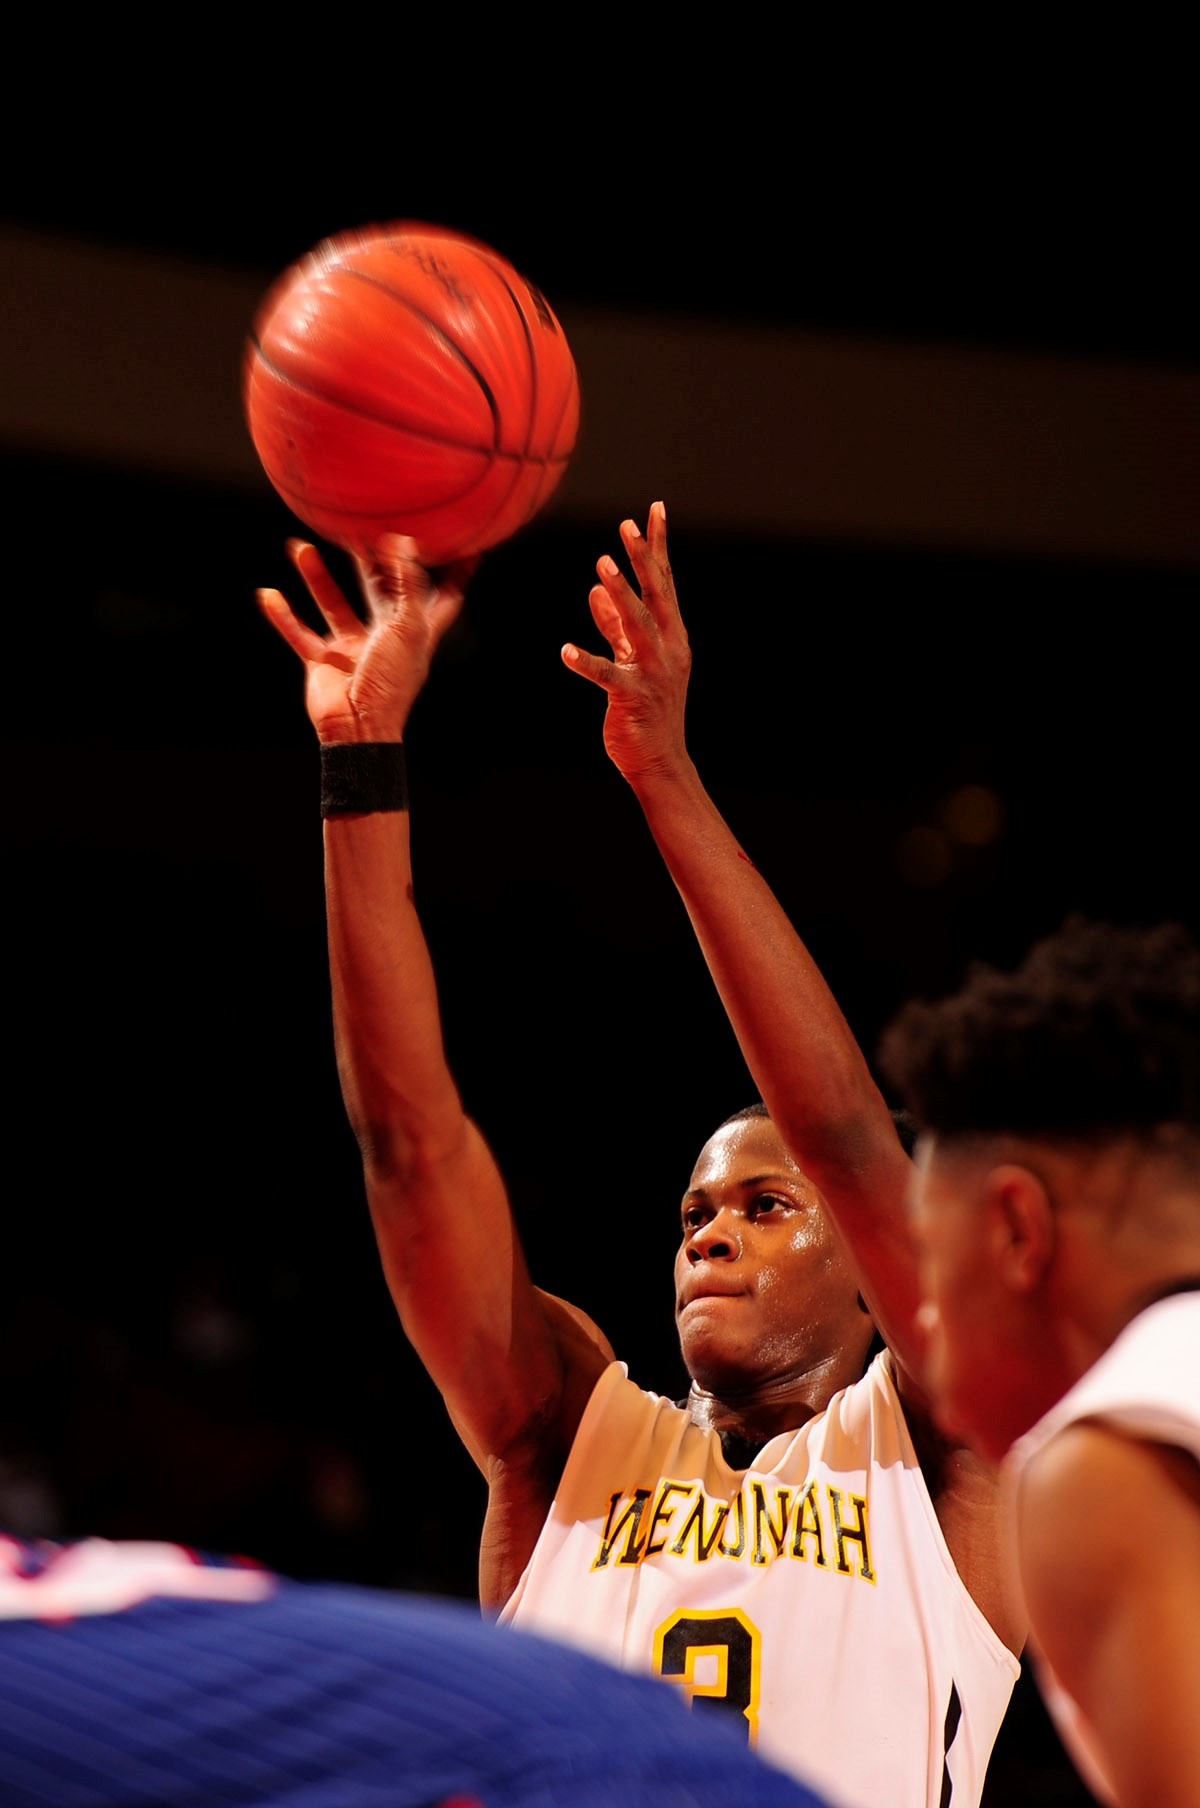 CLASS 5A BOYS' STATE CHAMPIONSHIP  Wenonah 51, Center Point 34